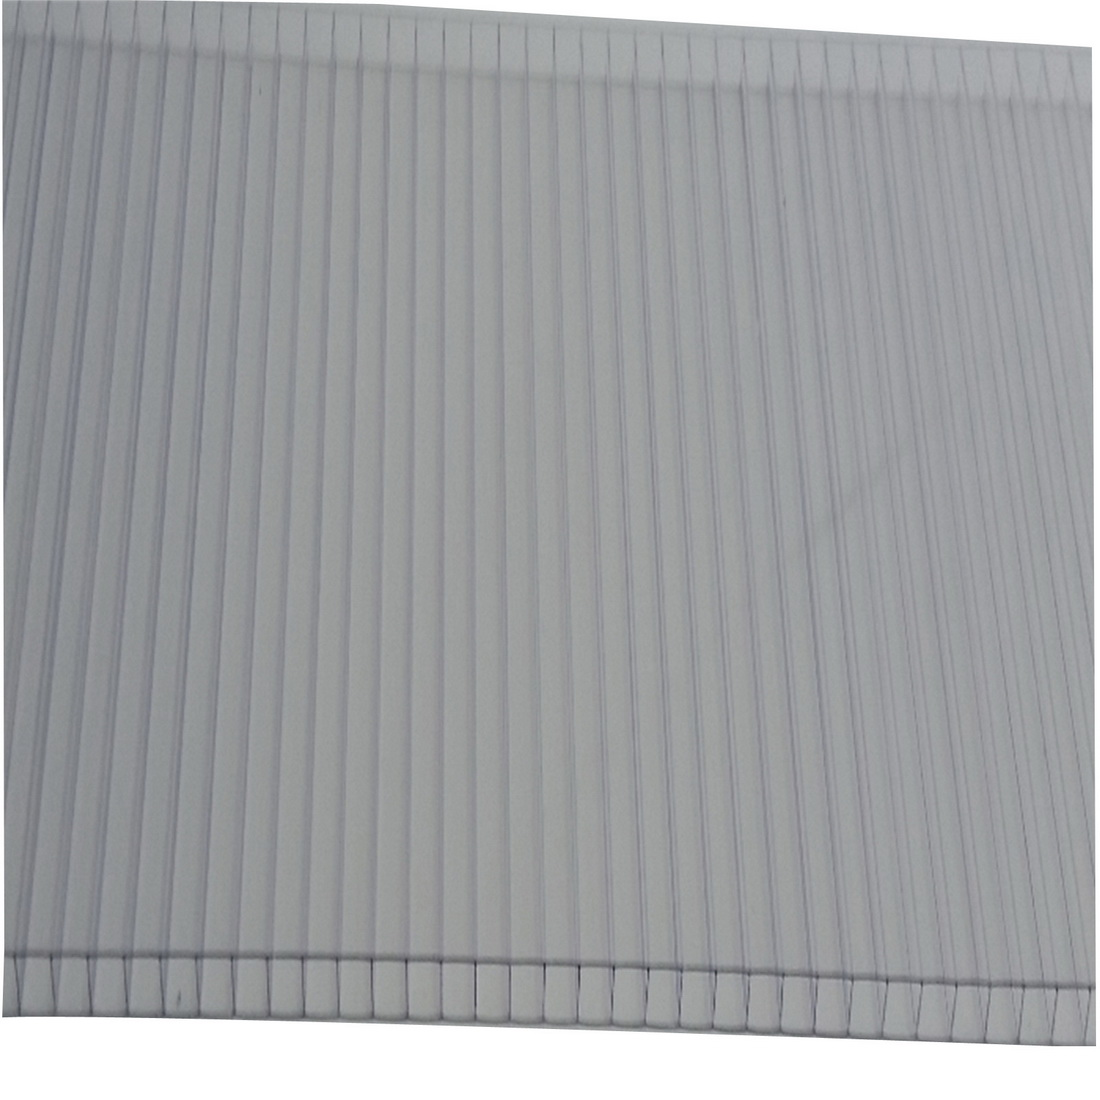 Twinwall Fluted Roofing 2400 x 1220 x 8mm Polycarbonate Clear 9418815042947